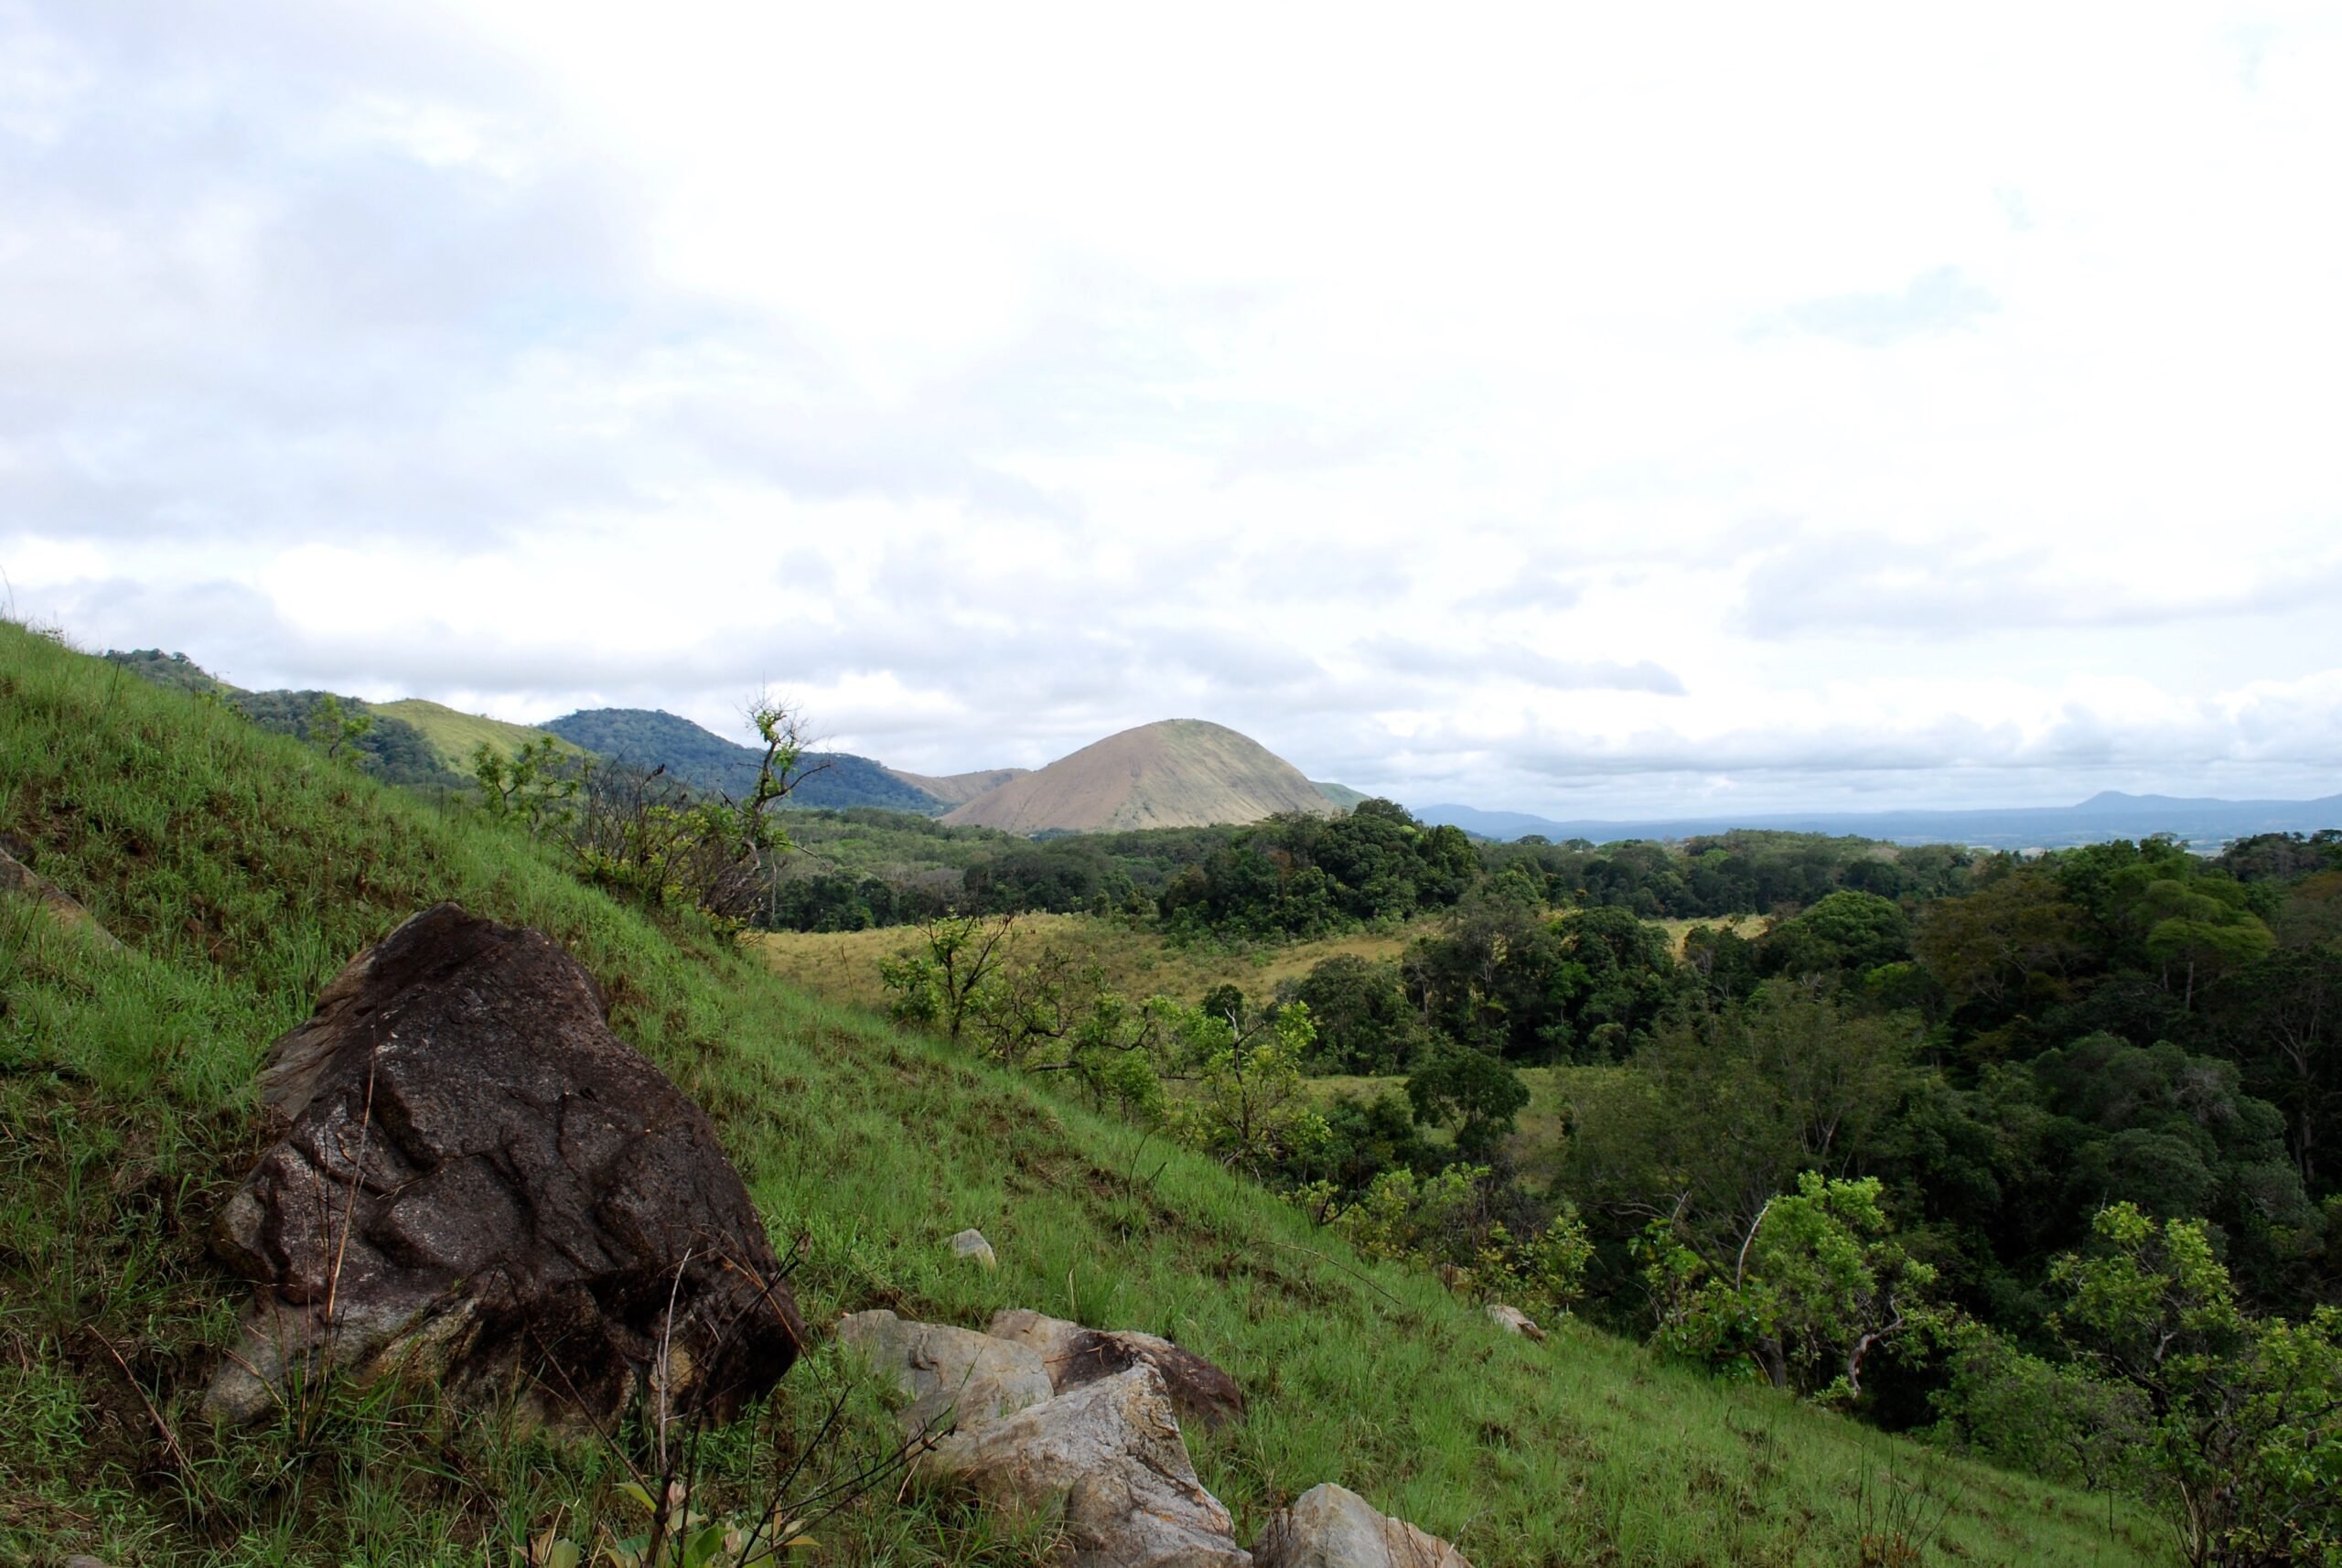 Gabon cashes carbon cheque for forestry support